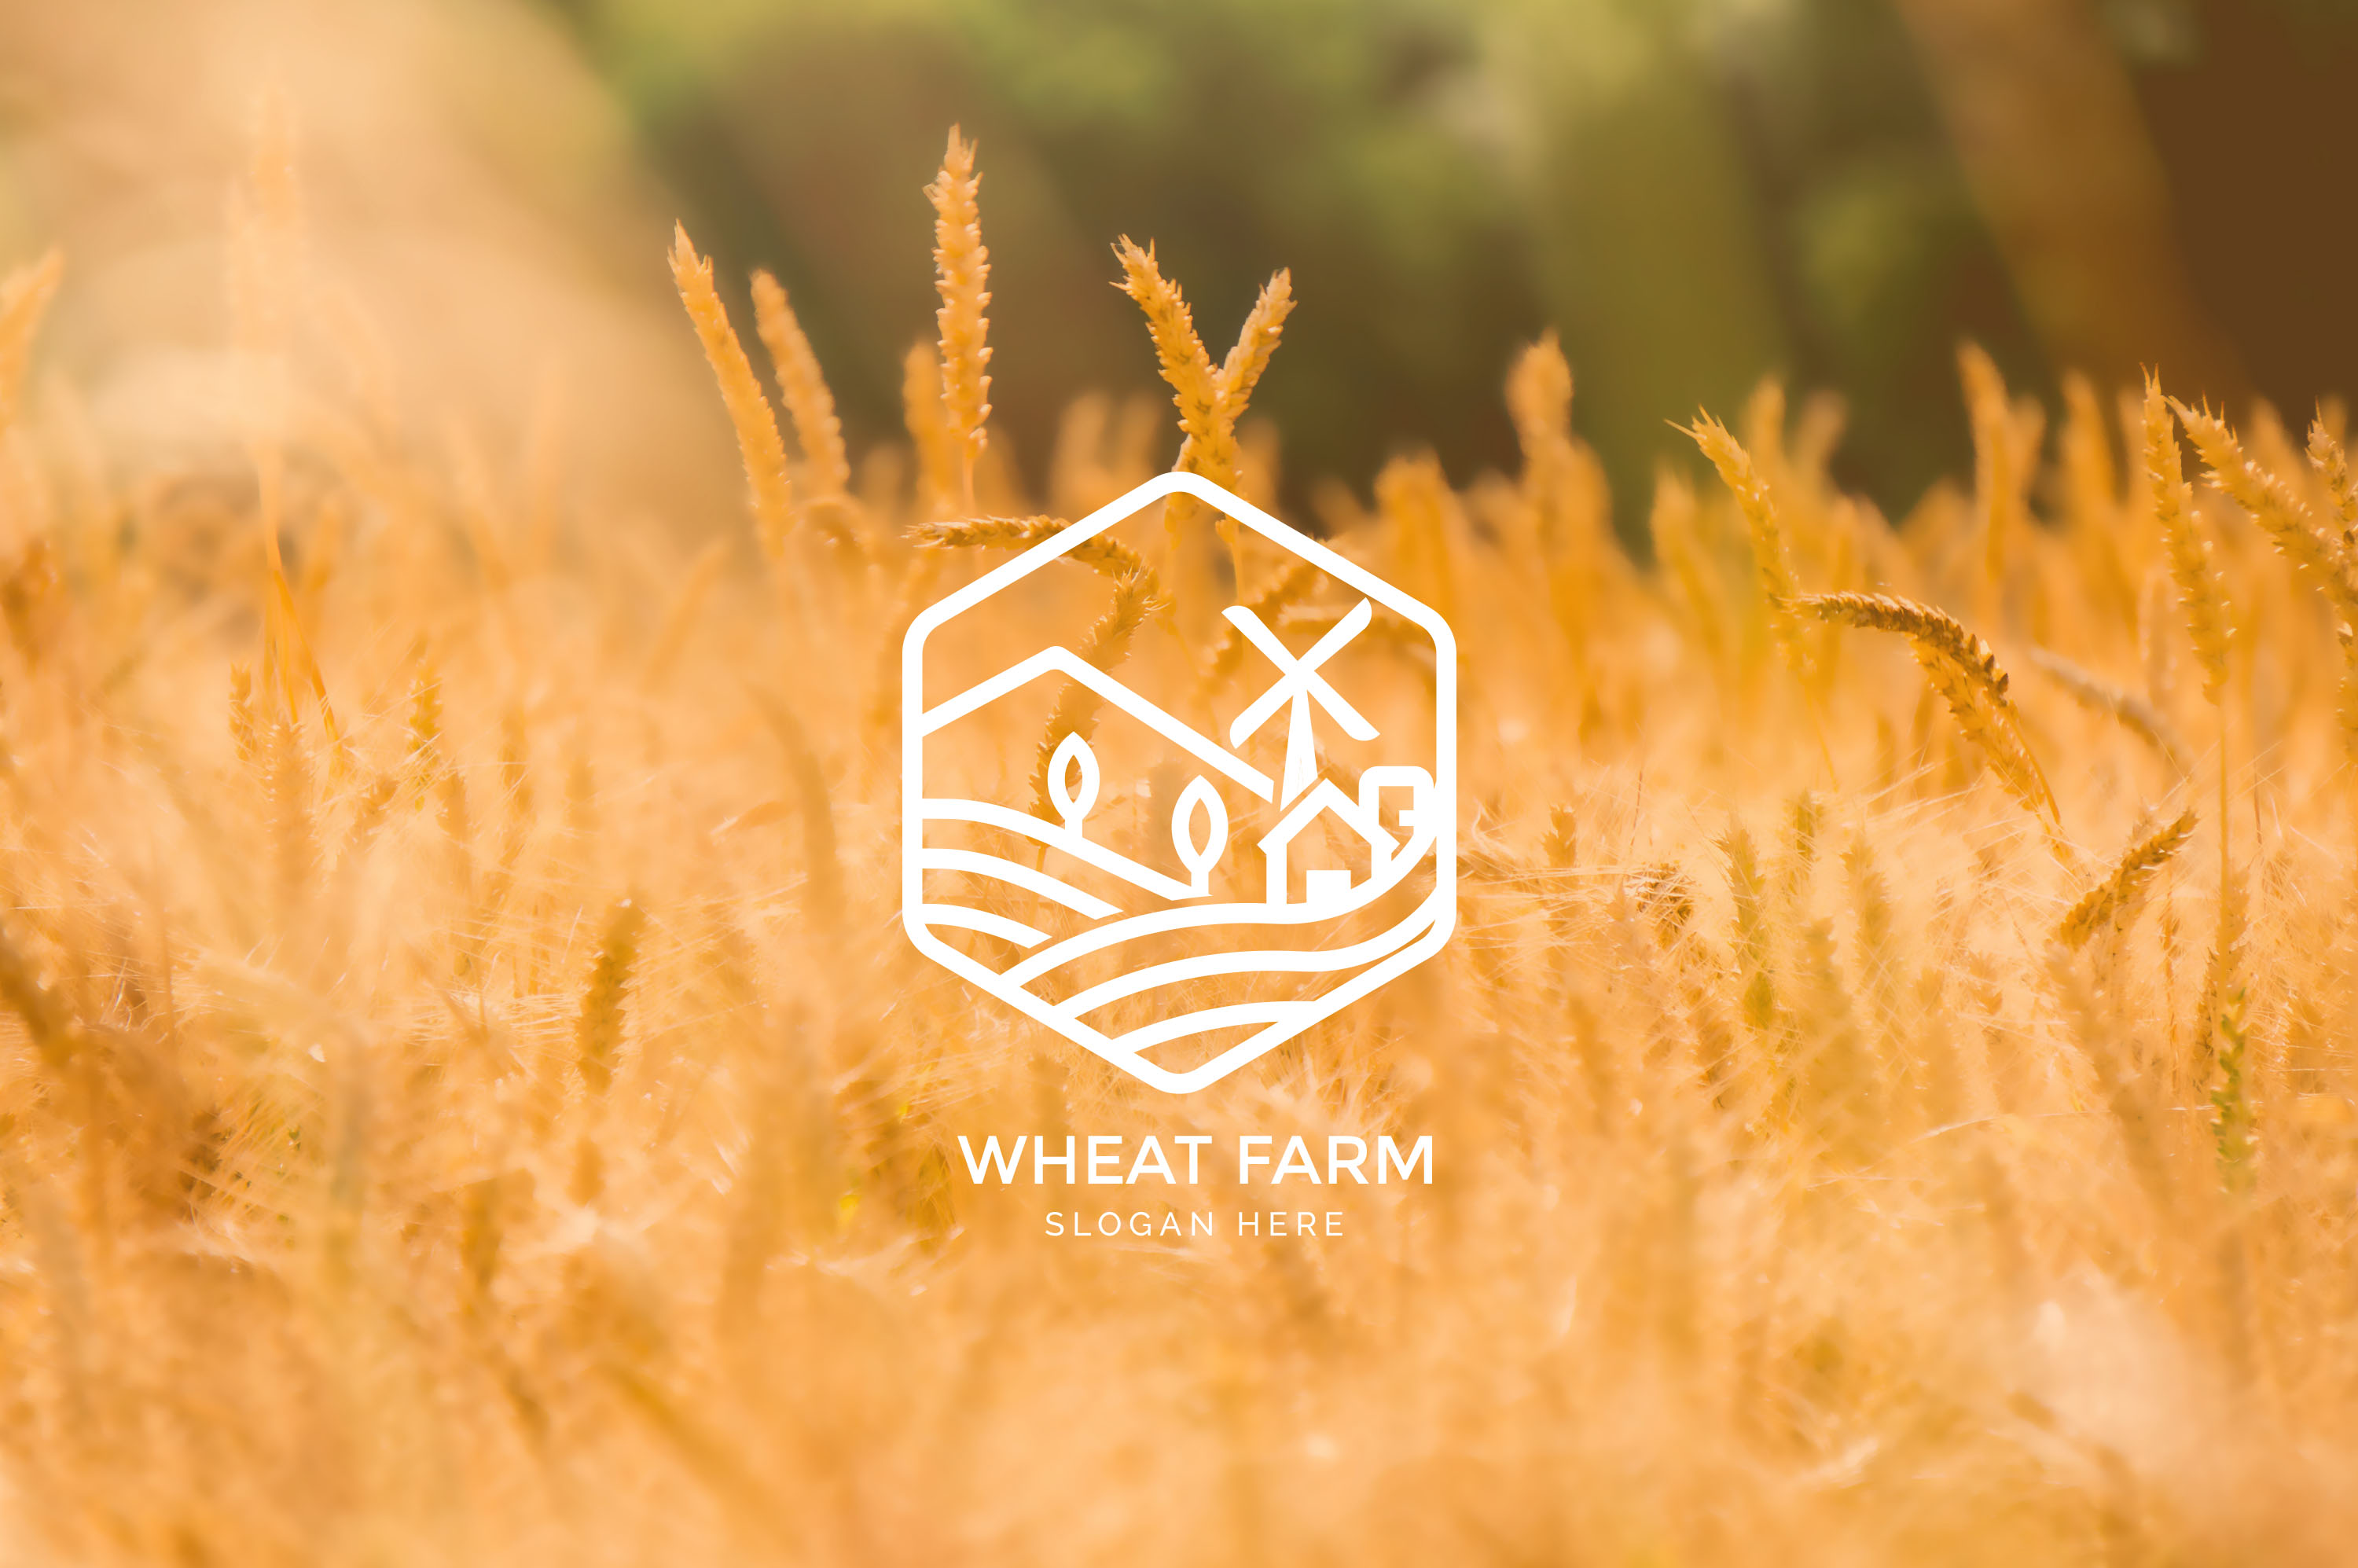 Agriculture - Wheat Farm Logo example image 1